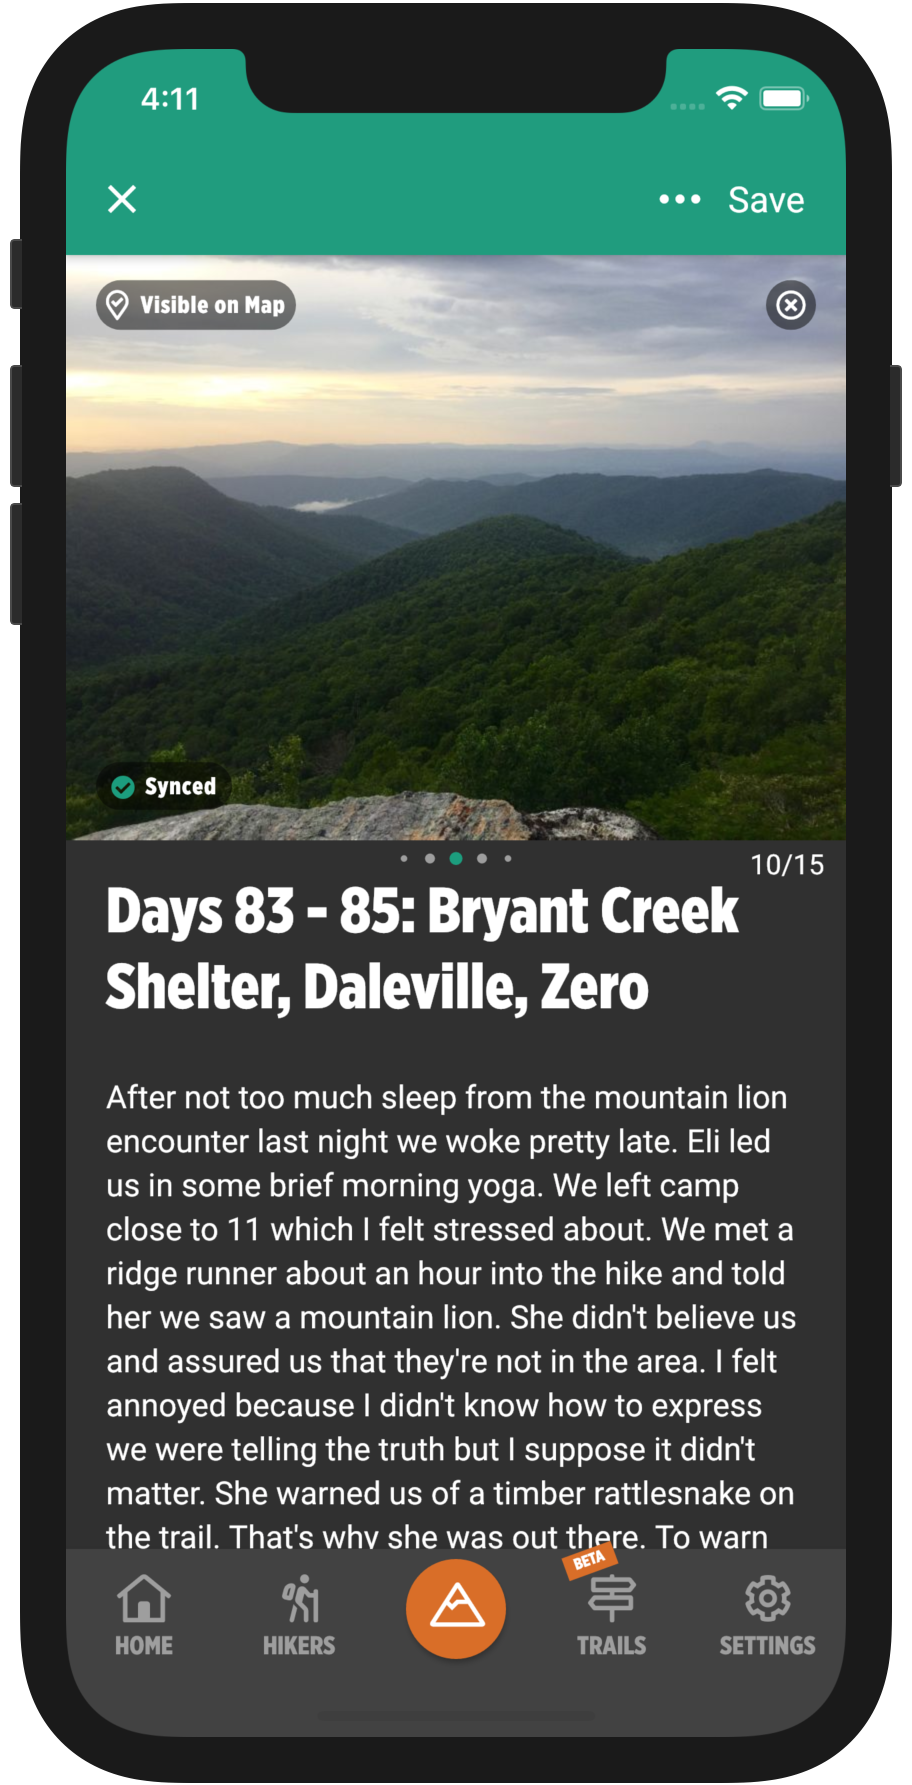 HikerFeed Mobile Screenshot - Trail Community Filters